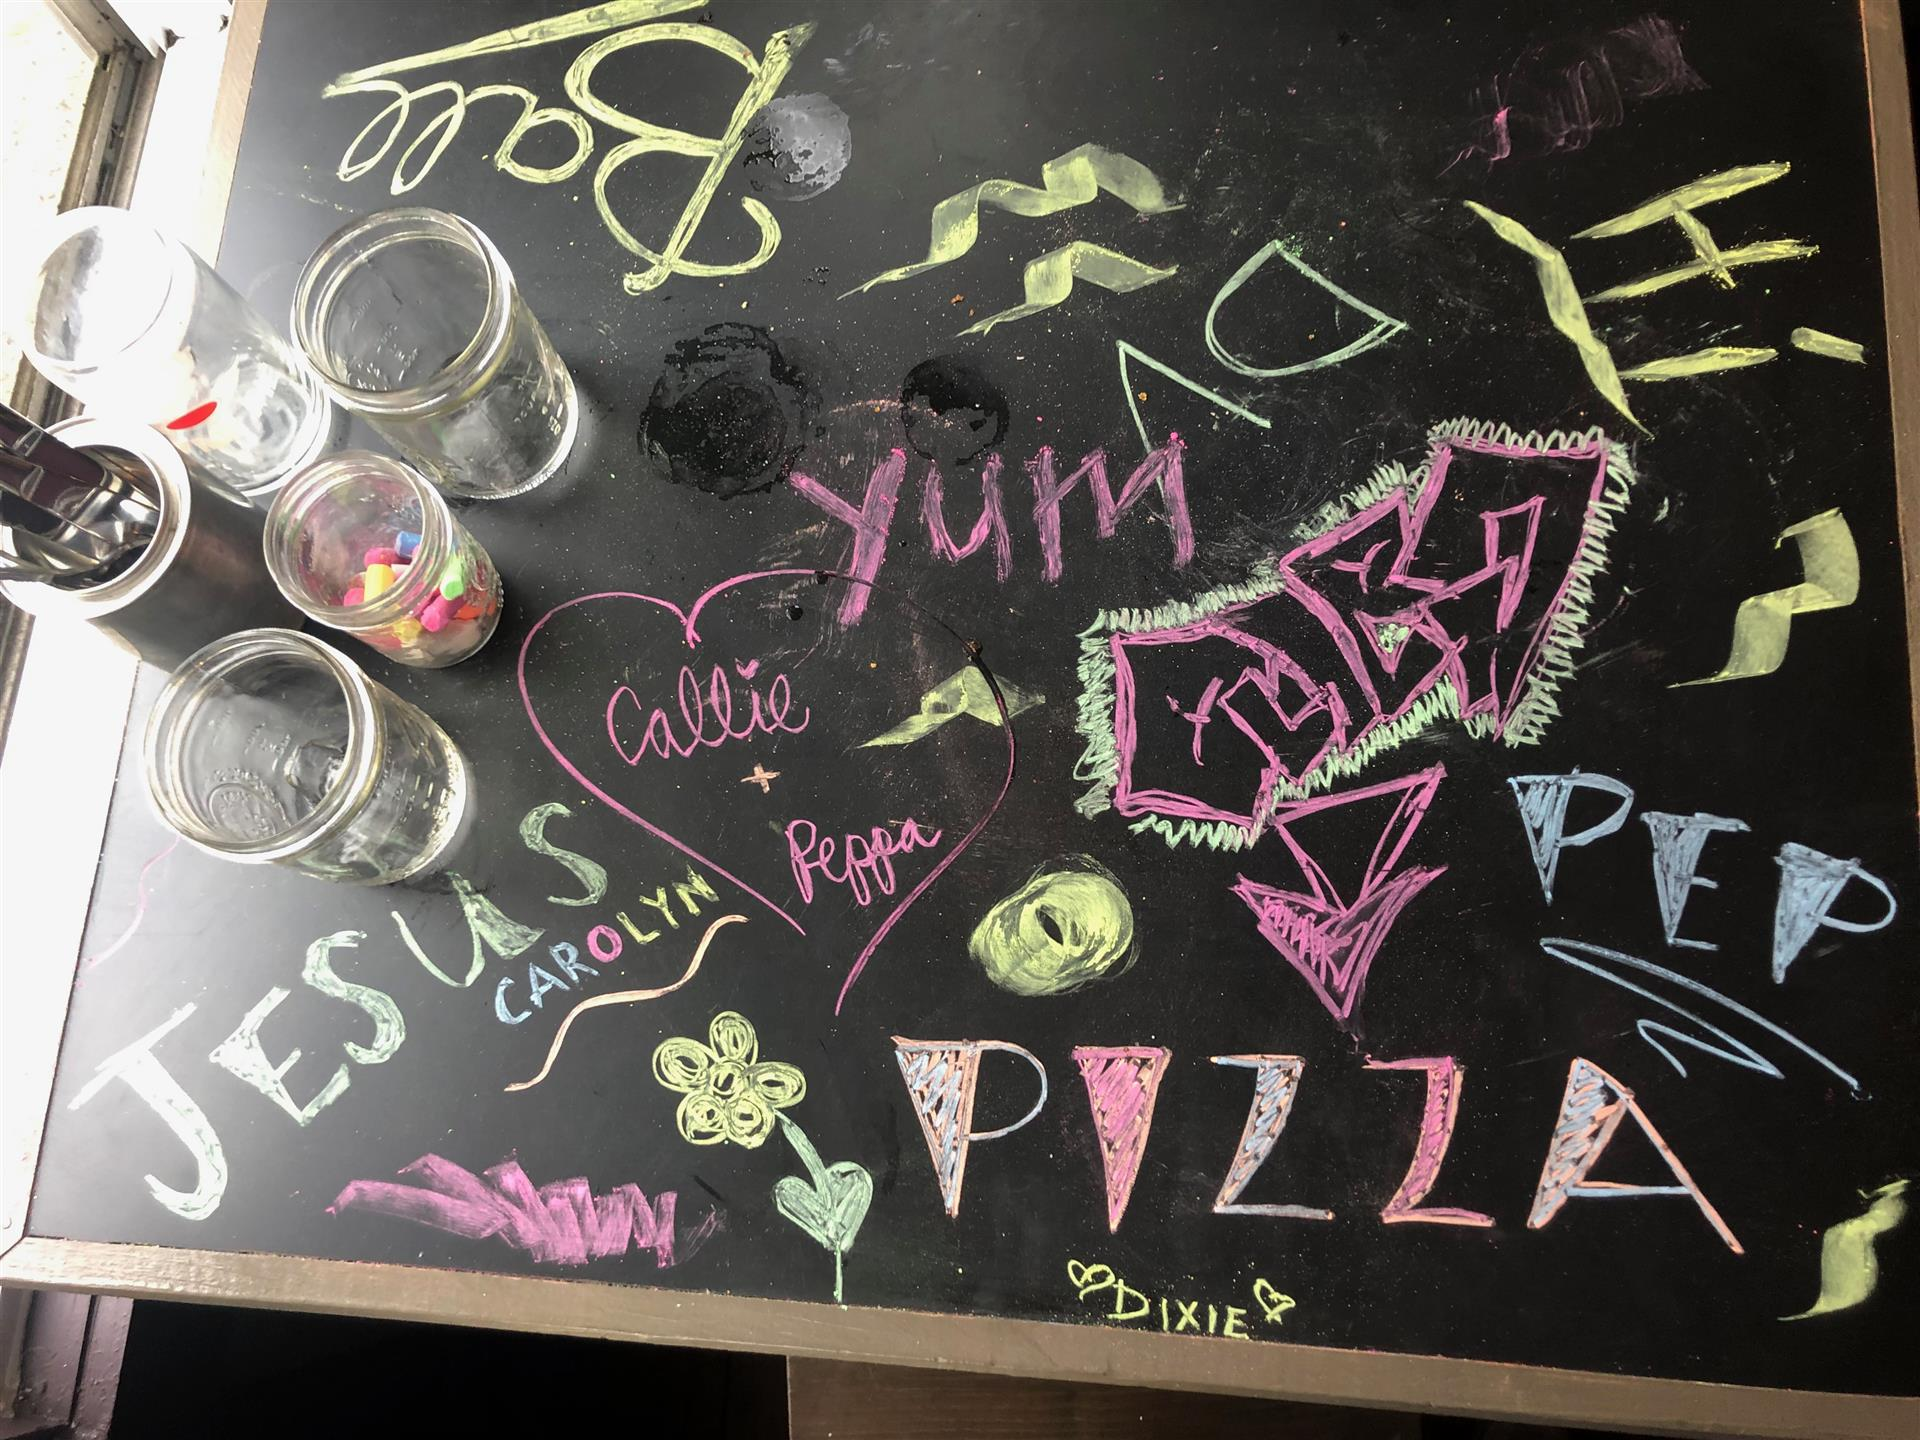 chalk art of verbiage on a table